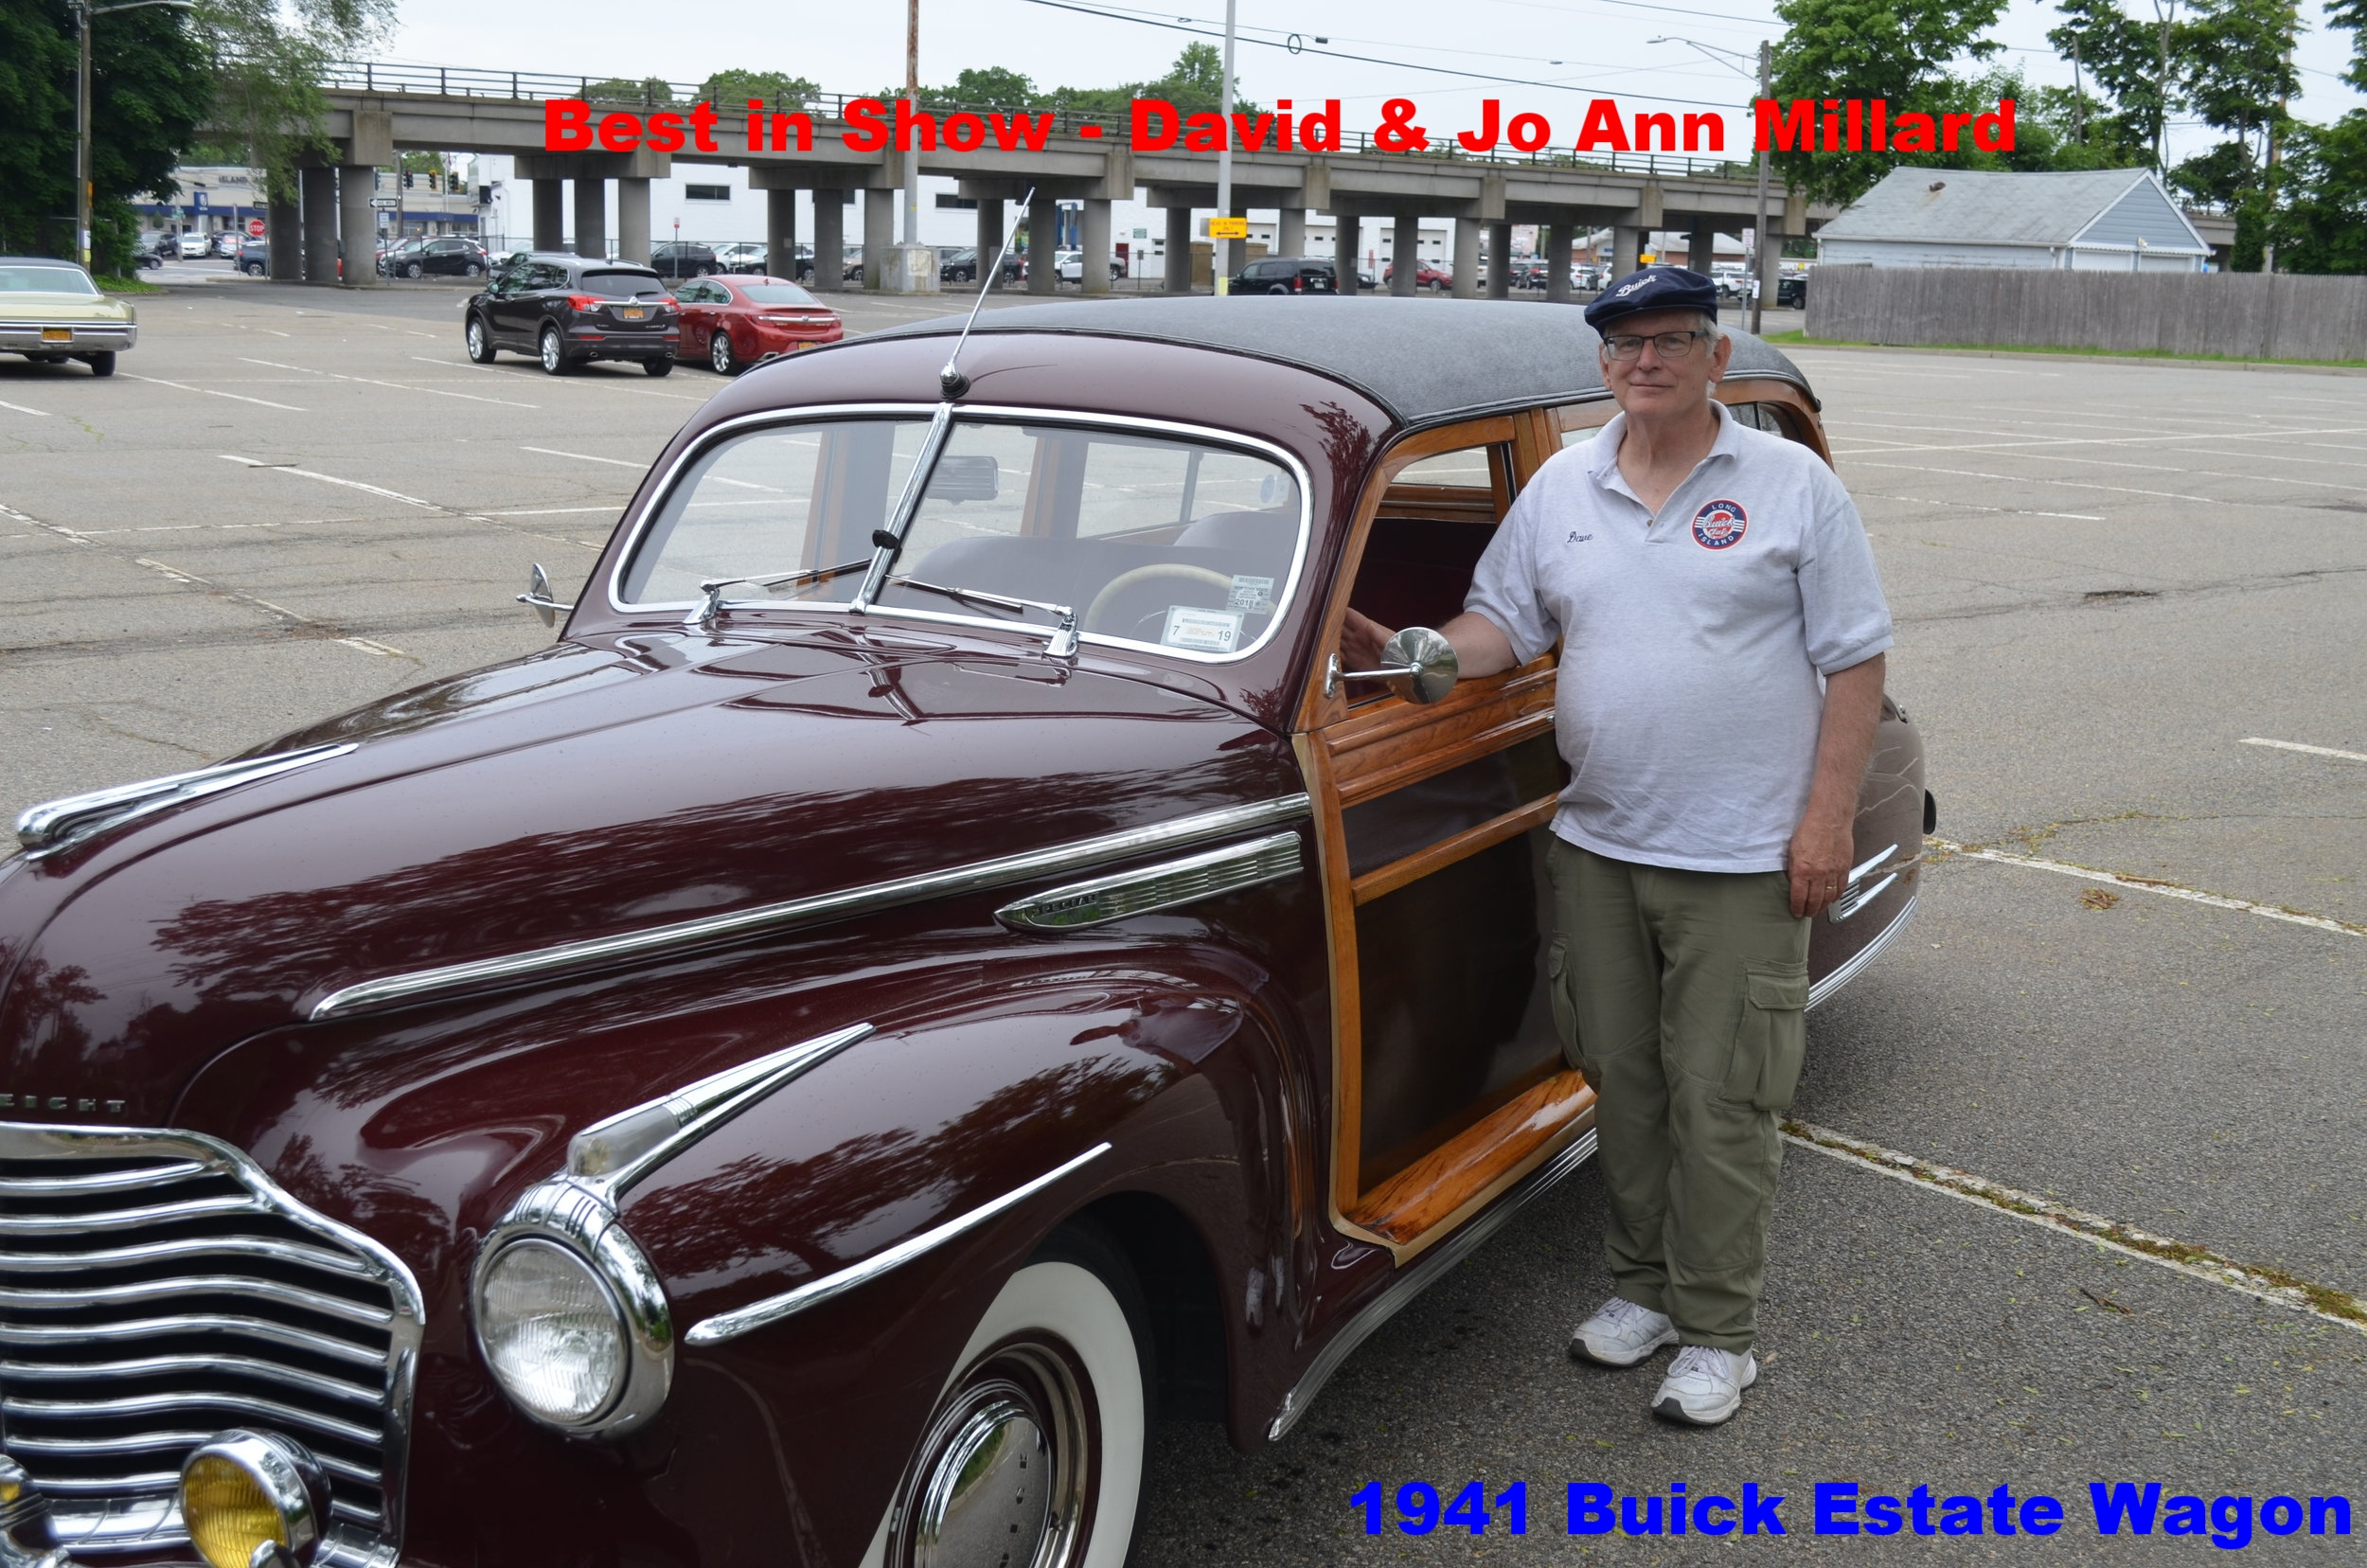 Best in Show - David & Jo Ann Millard - 1941 Estate Wagon